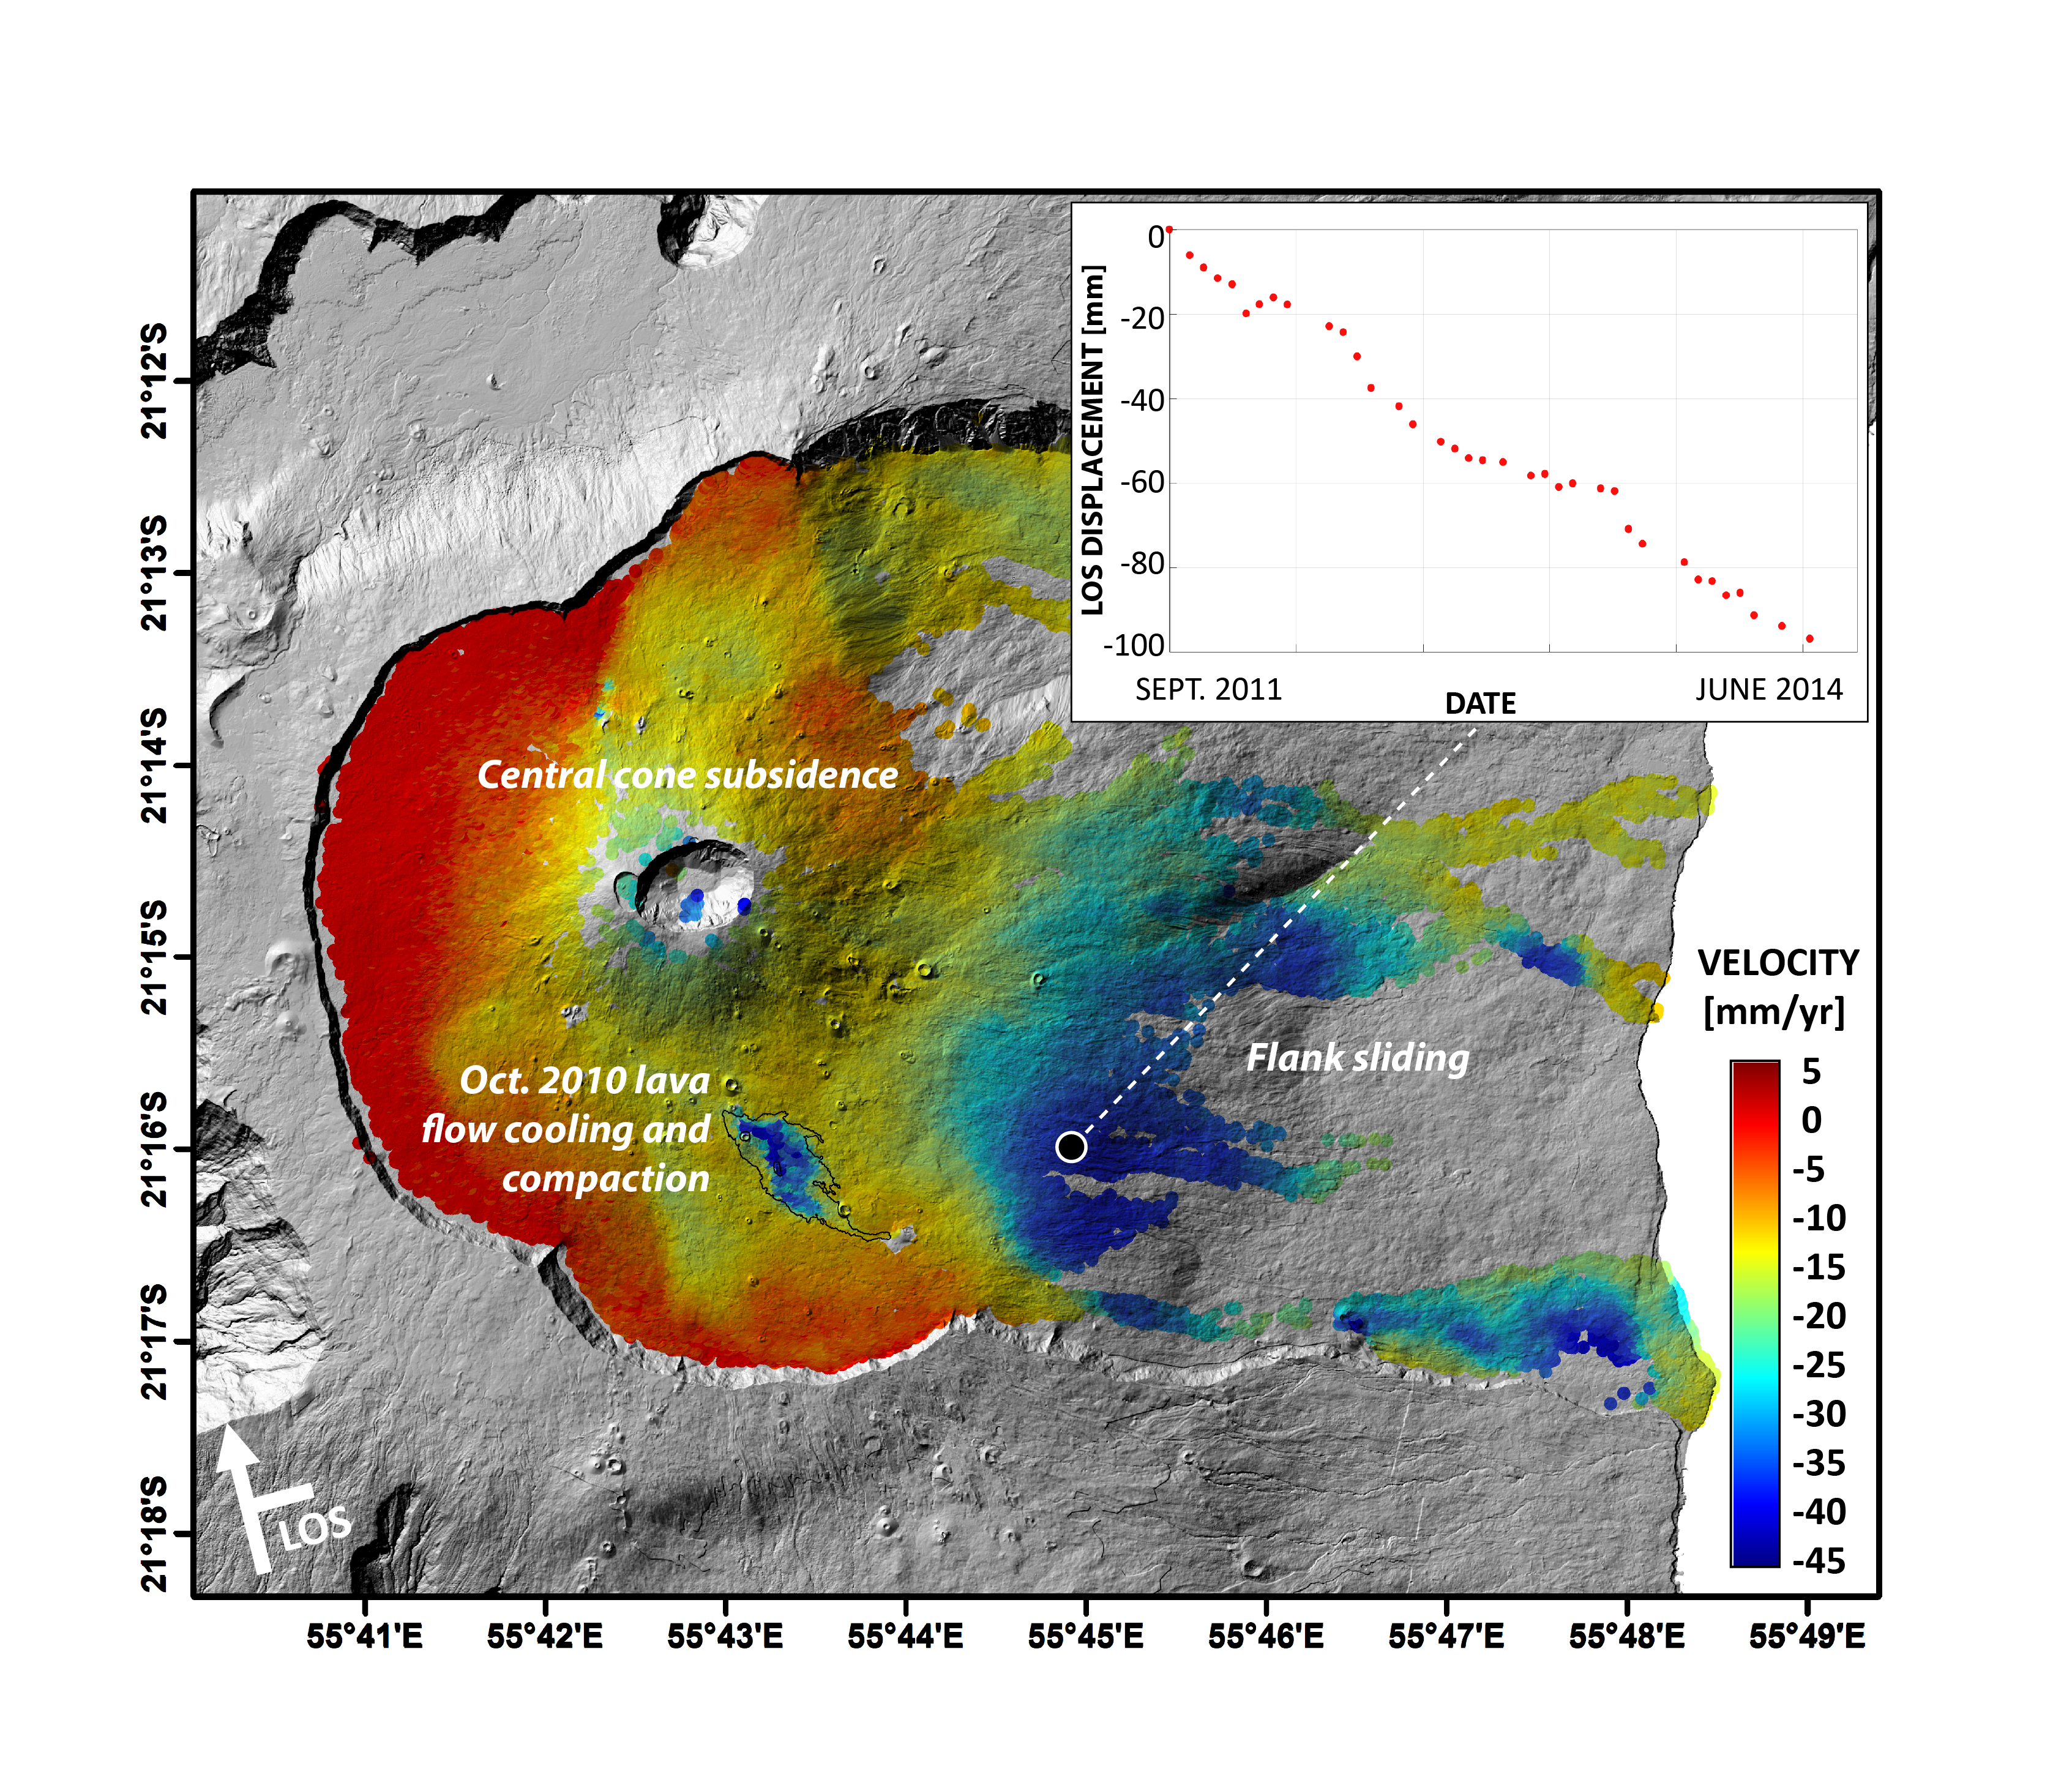 Remote Sensing Free Full Text The Role Of Interferometric Synthetic Aperture Radar In Detecting Mapping Monitoring And Modelling The Volcanic Activity Of Piton De La Fournaise La Reunion A Review Html